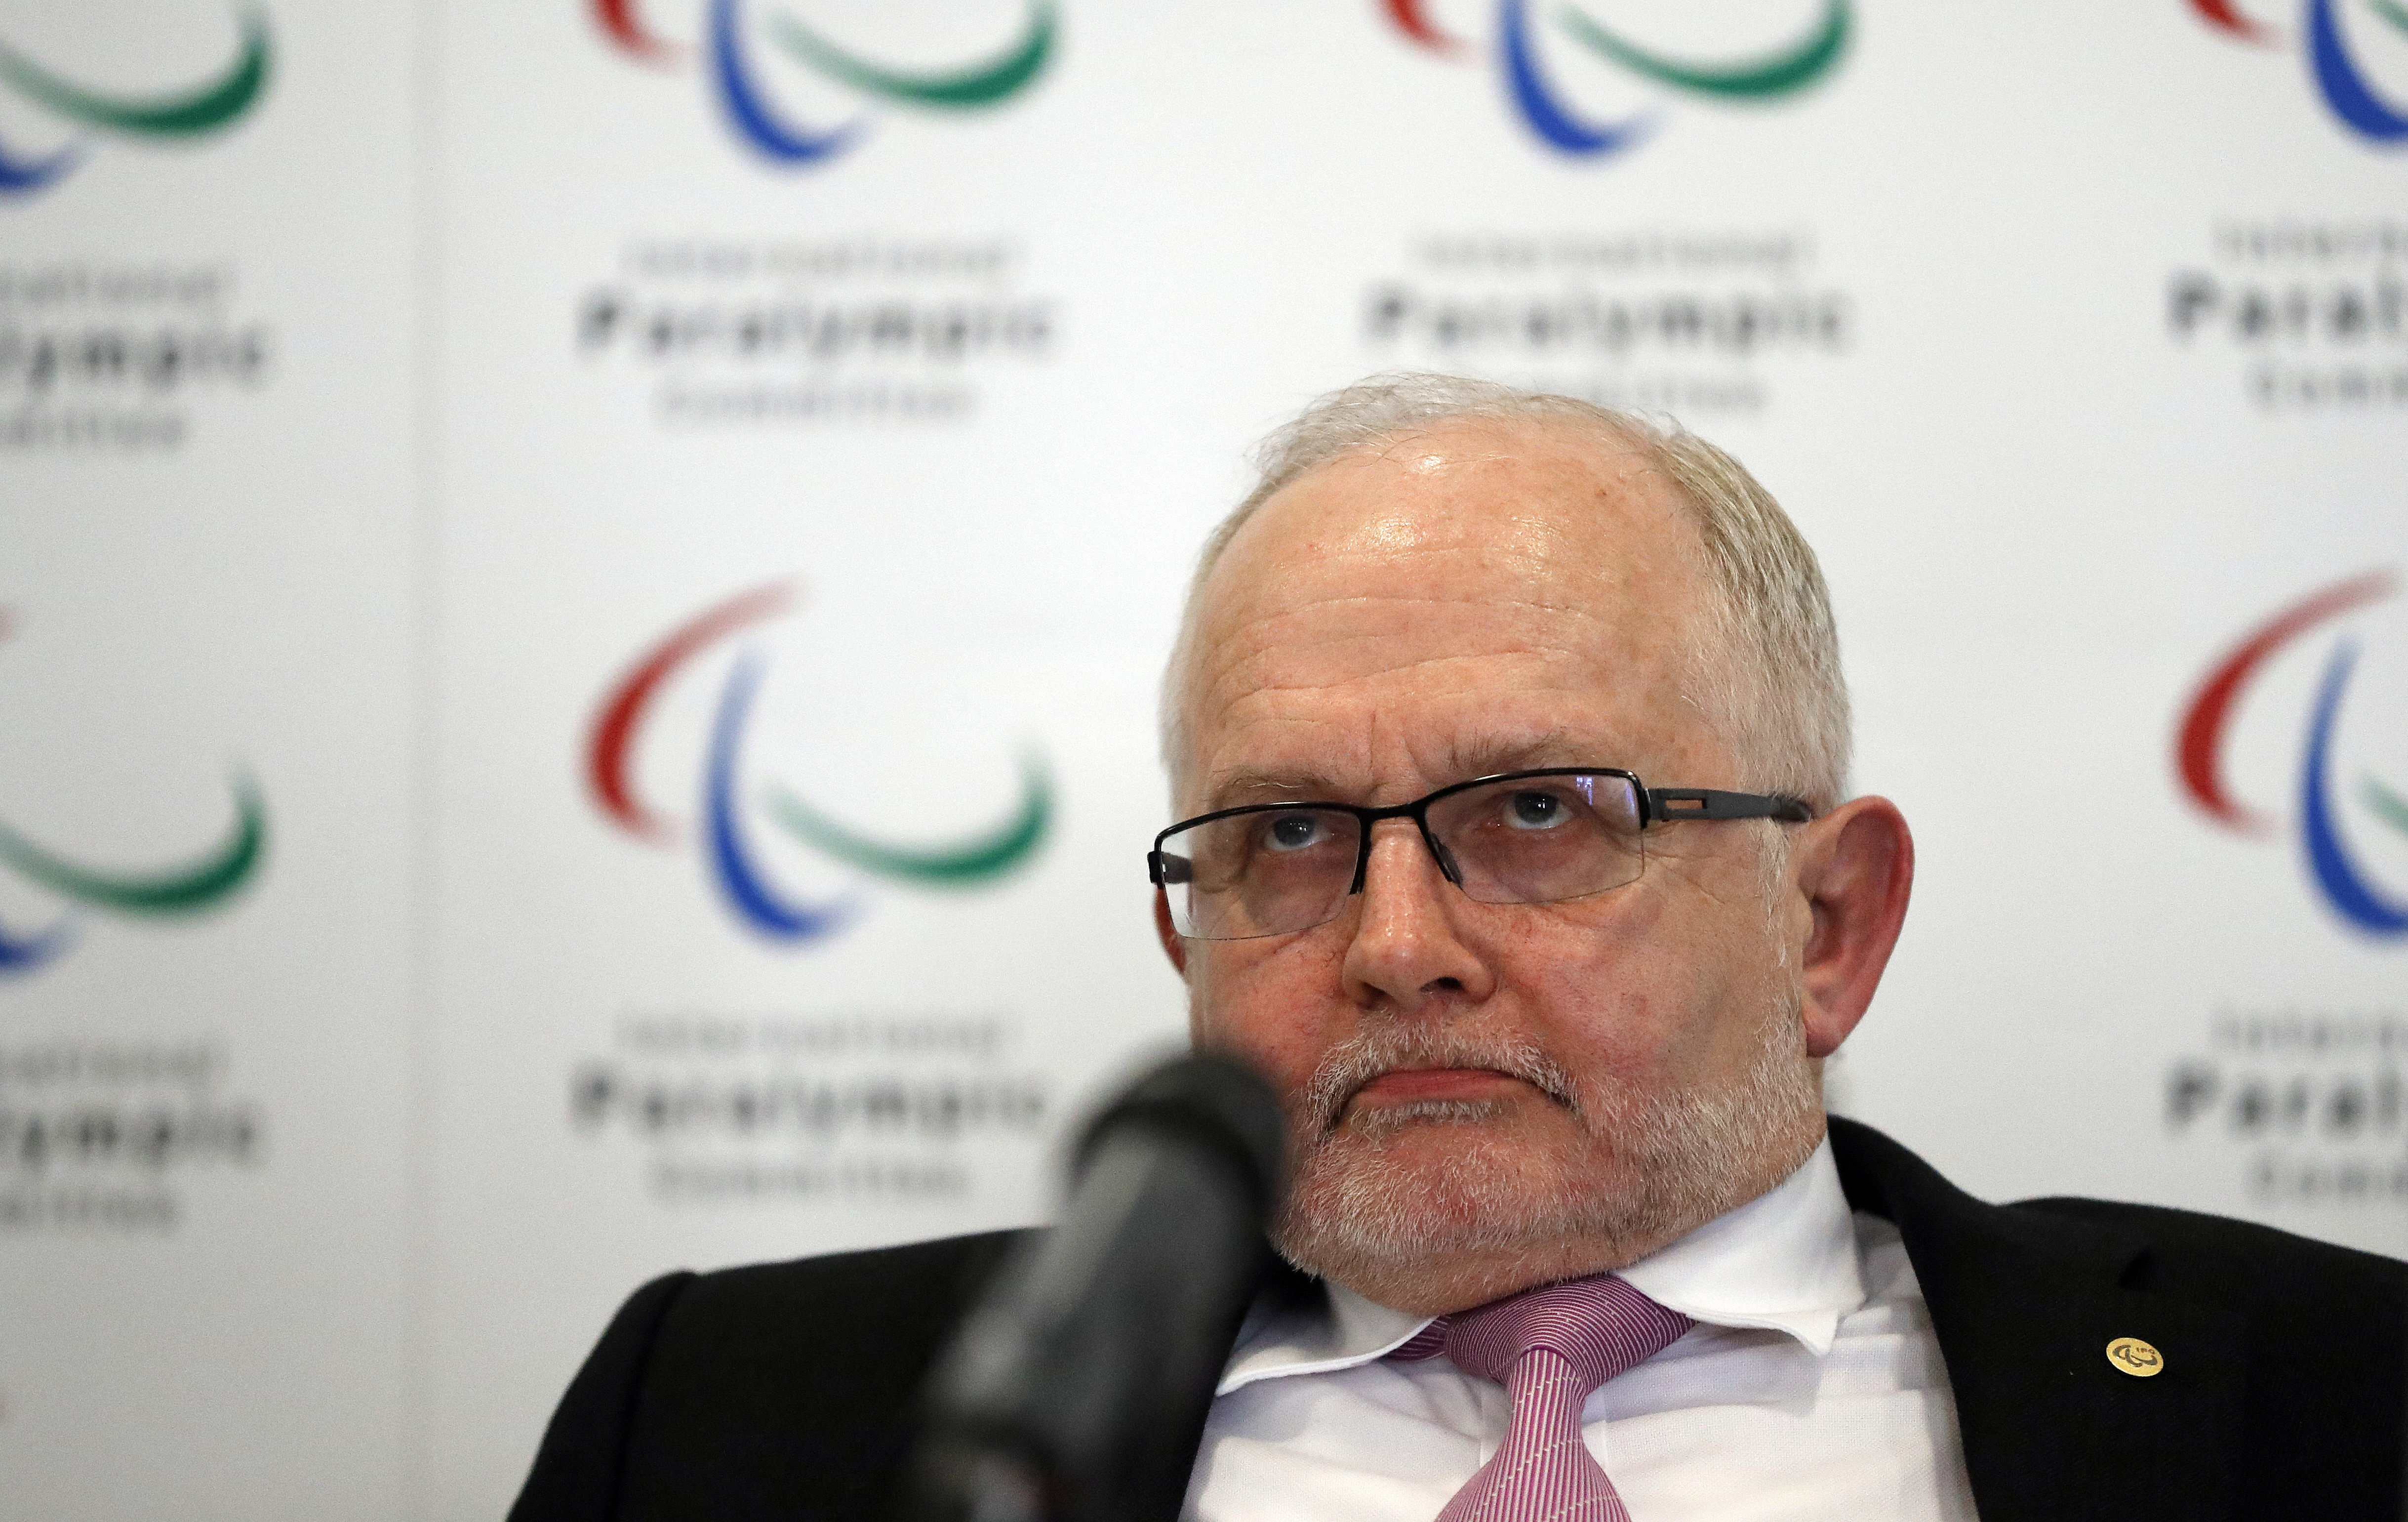 International Paralympic Committee (IPC) President Philip Craven listens during a press conference, in London, Monday, May 22, 2017. The International Paralympic Committee says there is a strong chance that Russia will be banned from the 2018 Winter Paral